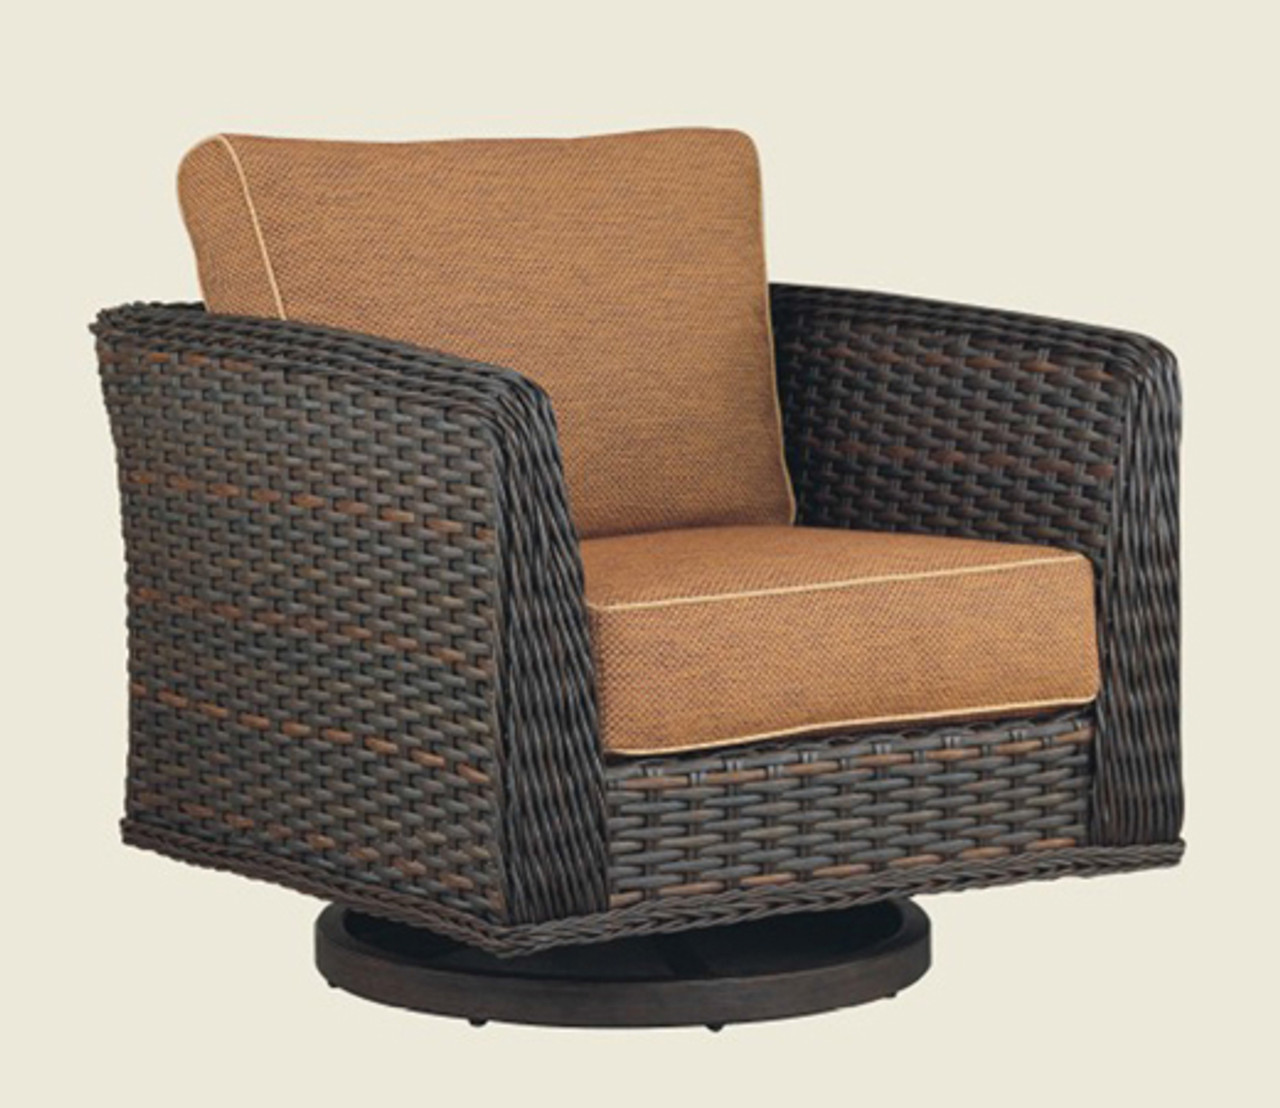 Admirable Patio Renaissance Catalina Collection Deep Seating Swivel Glider Unemploymentrelief Wooden Chair Designs For Living Room Unemploymentrelieforg